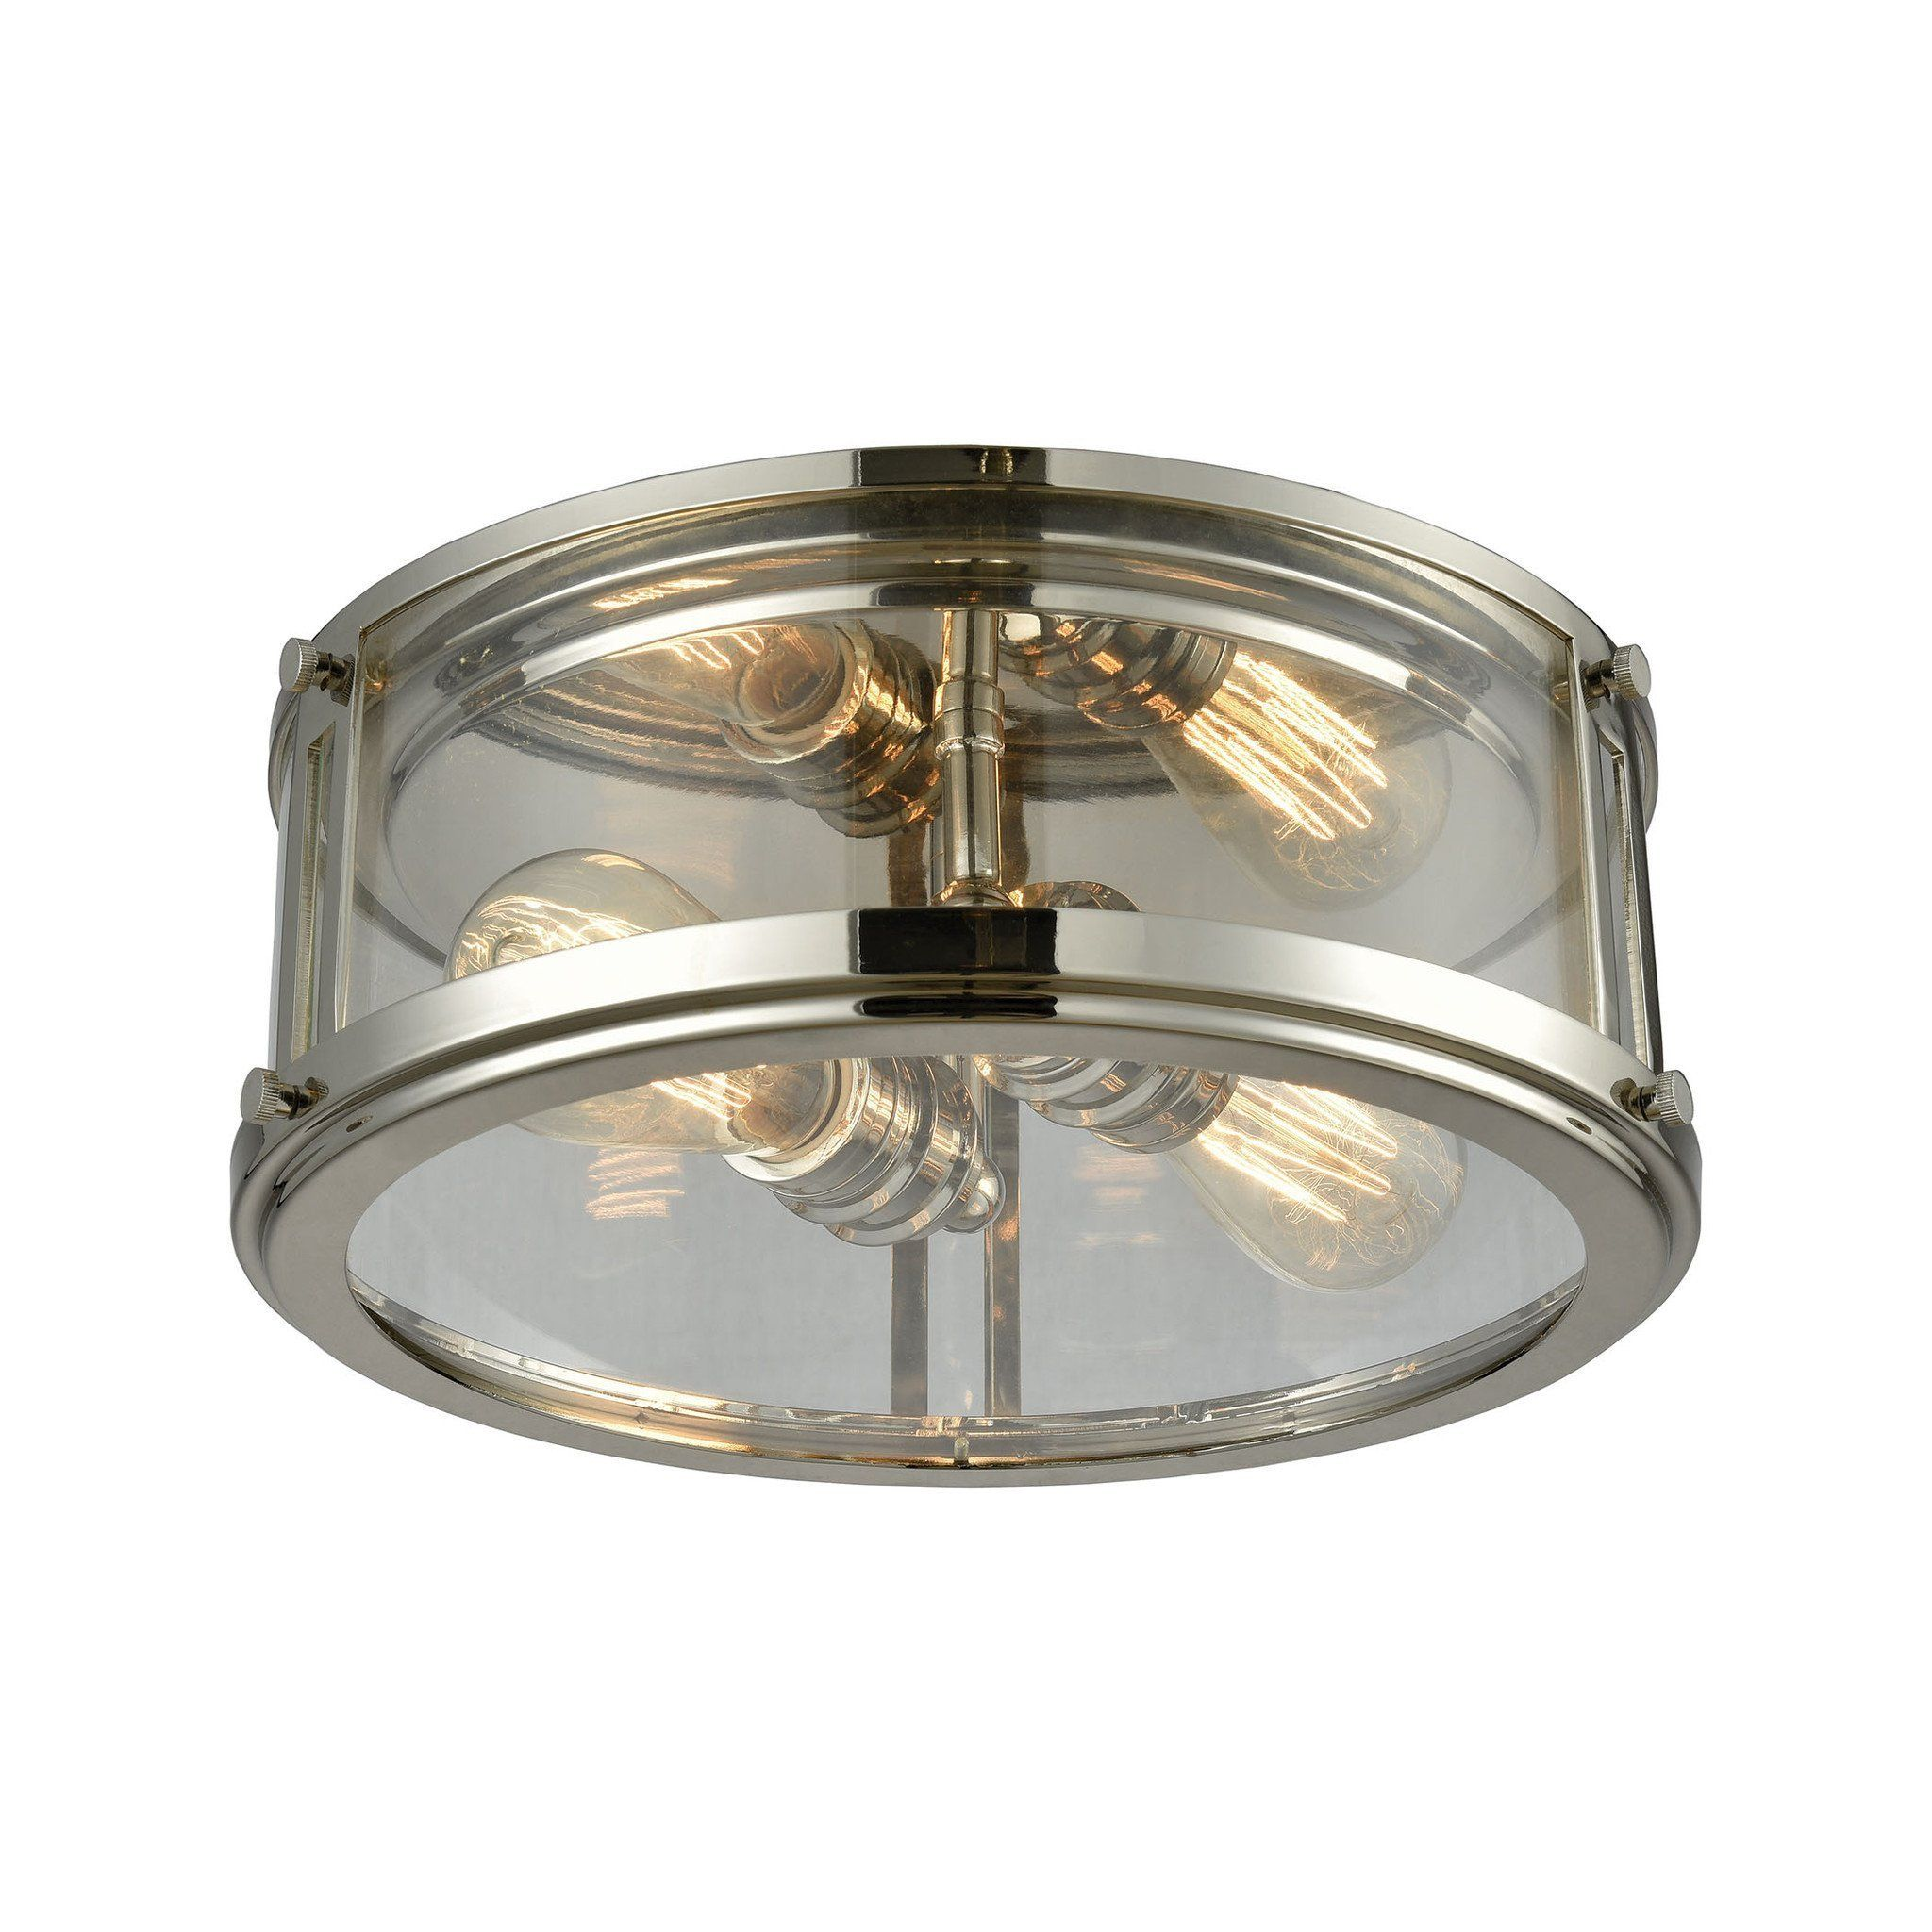 island light elk lindhurst oil rubbed cfm capitol wide item bronze lighting finish in mercury glass and shown inch